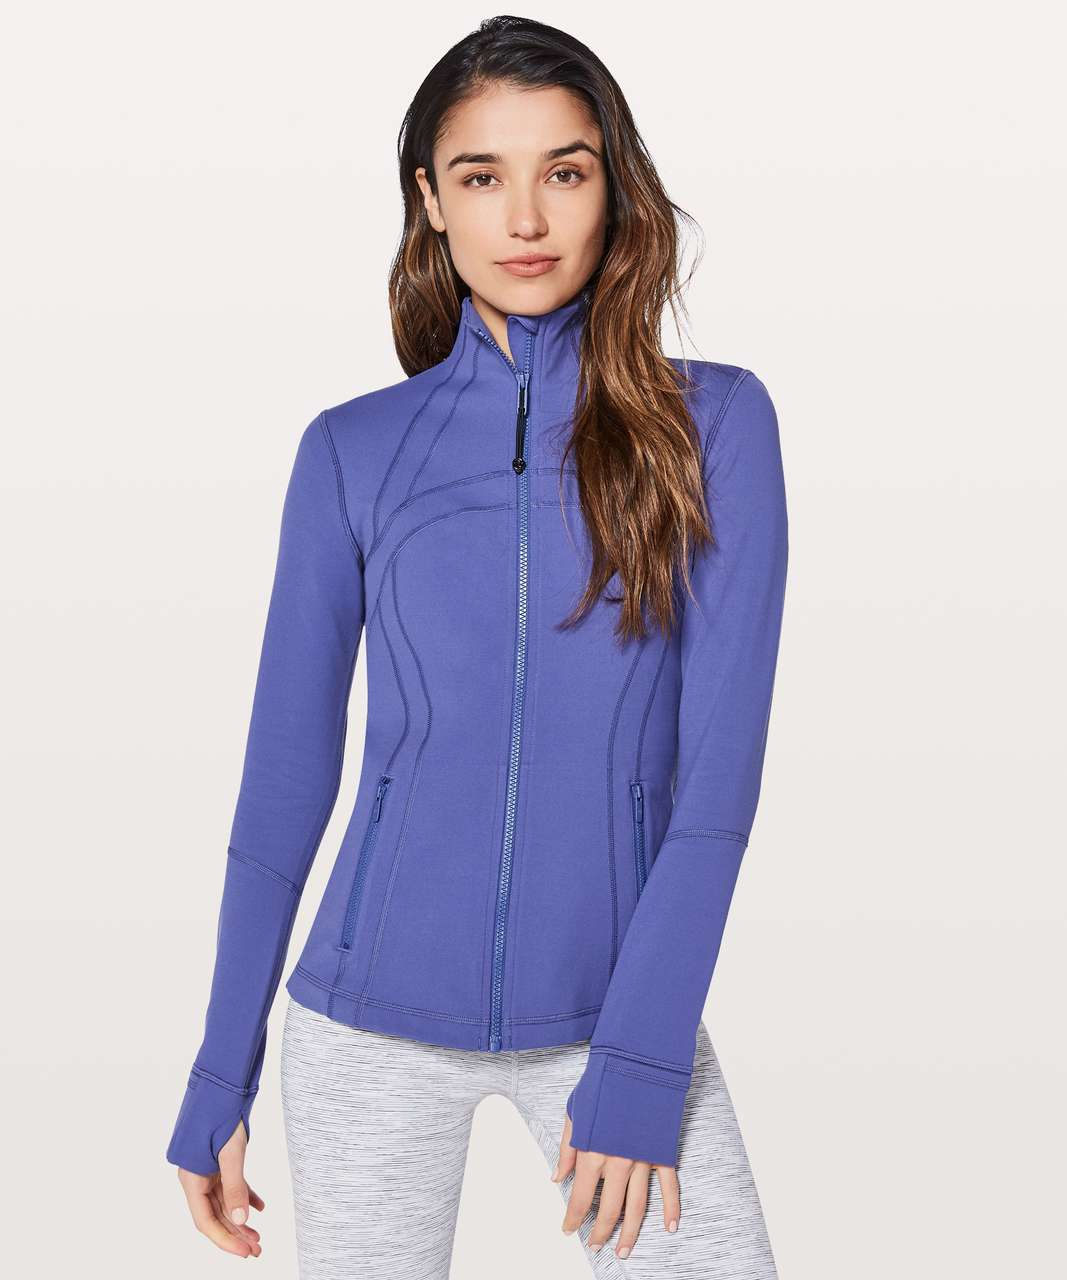 Lululemon Define Jacket - Stony Grape